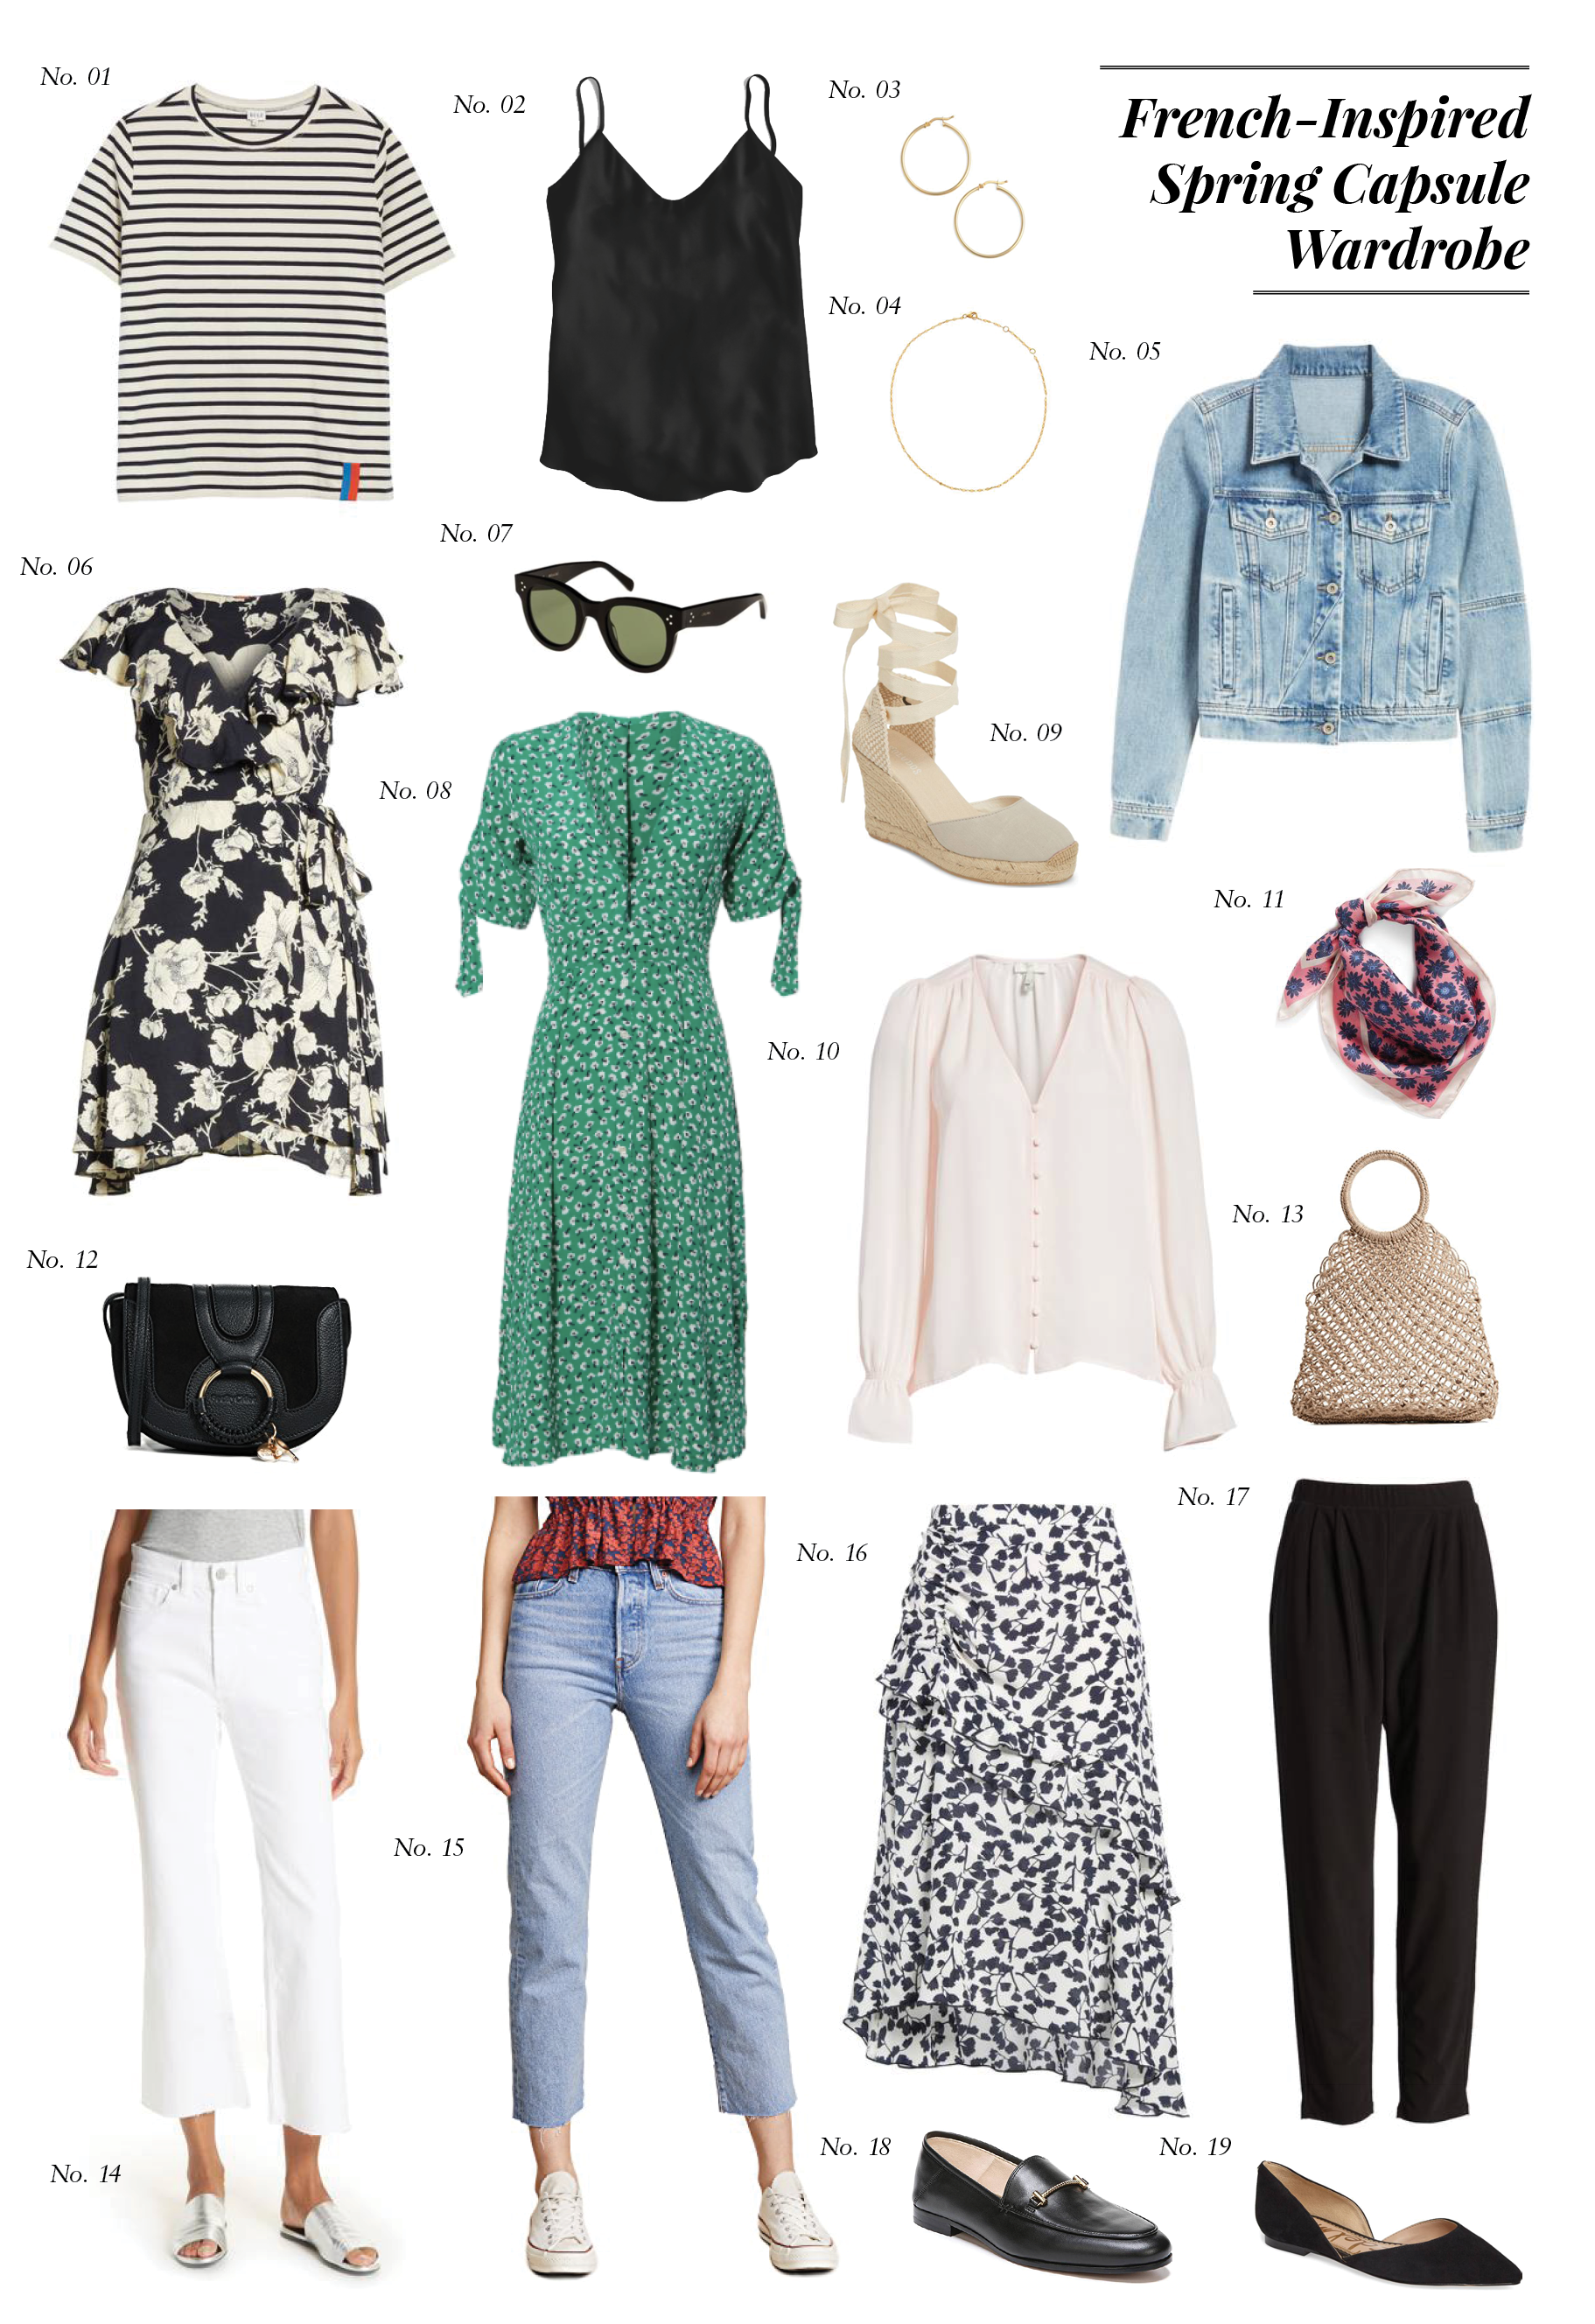 French-Inspired Spring Capsule Wardrobe